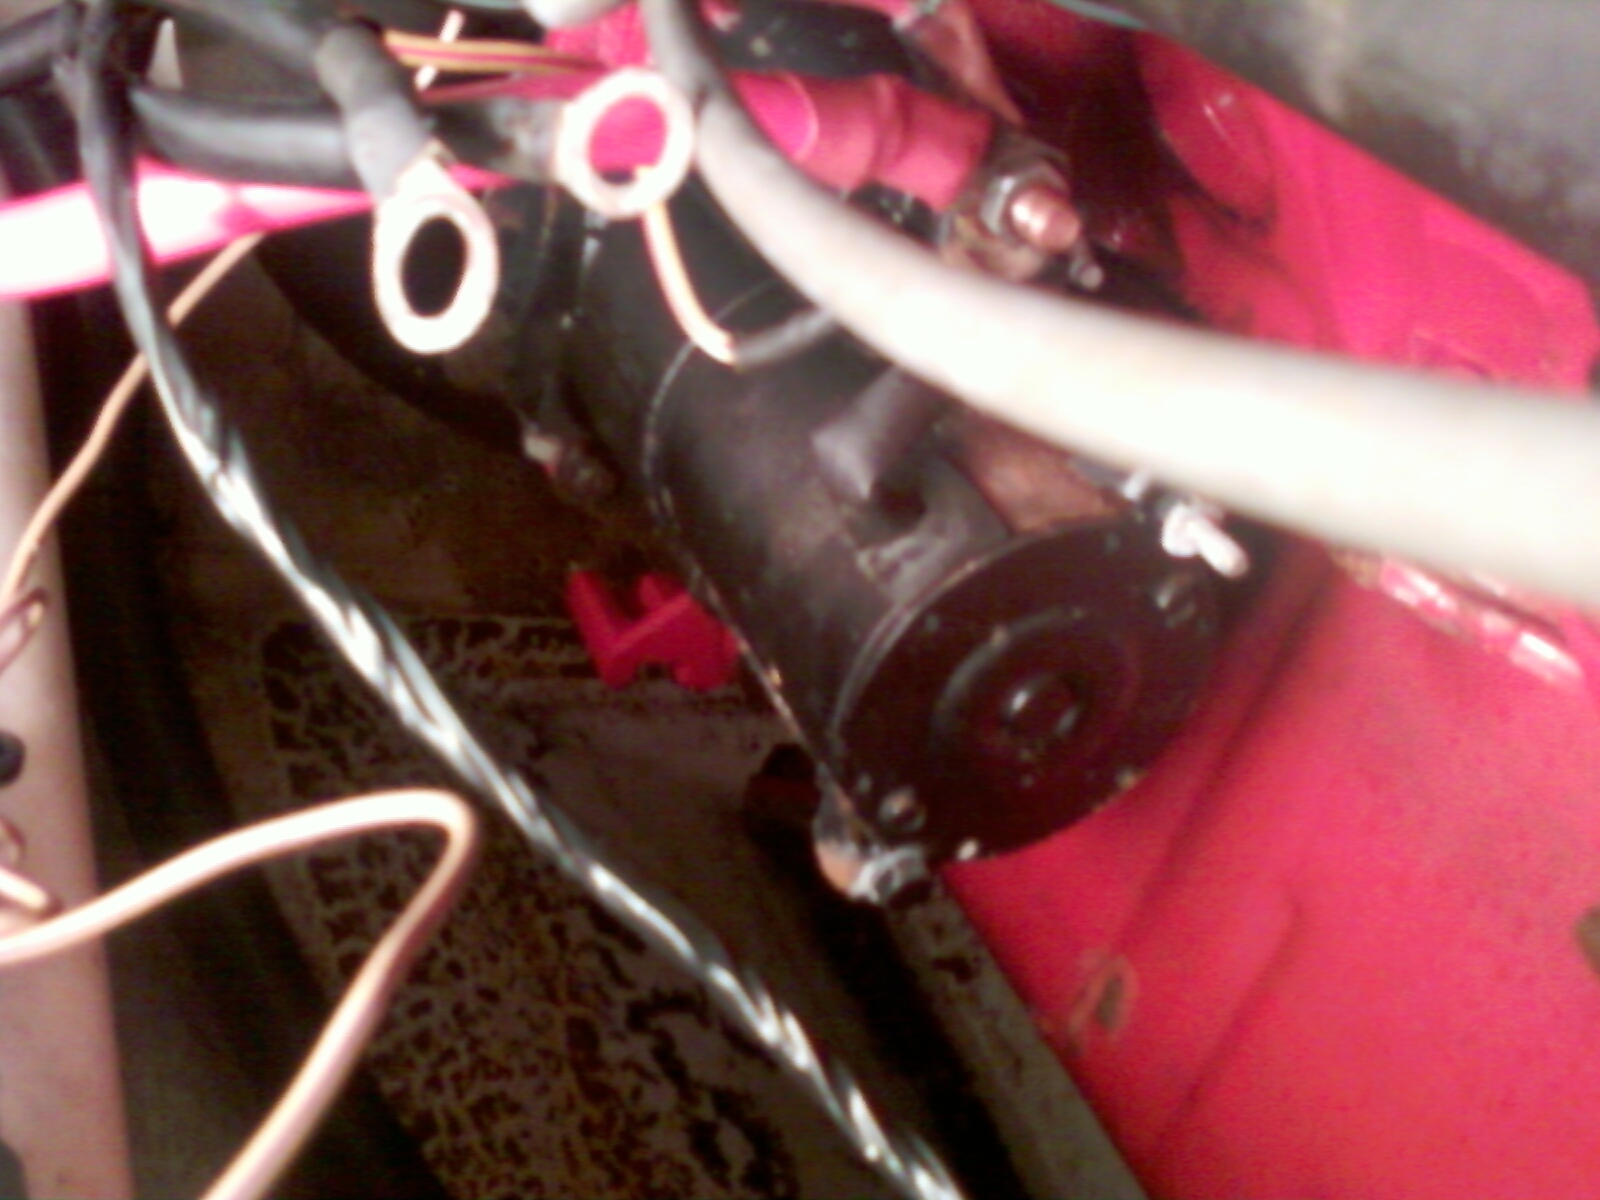 Volvo Starter Wiring Diagram : My son recently replaced the starter on our volvo